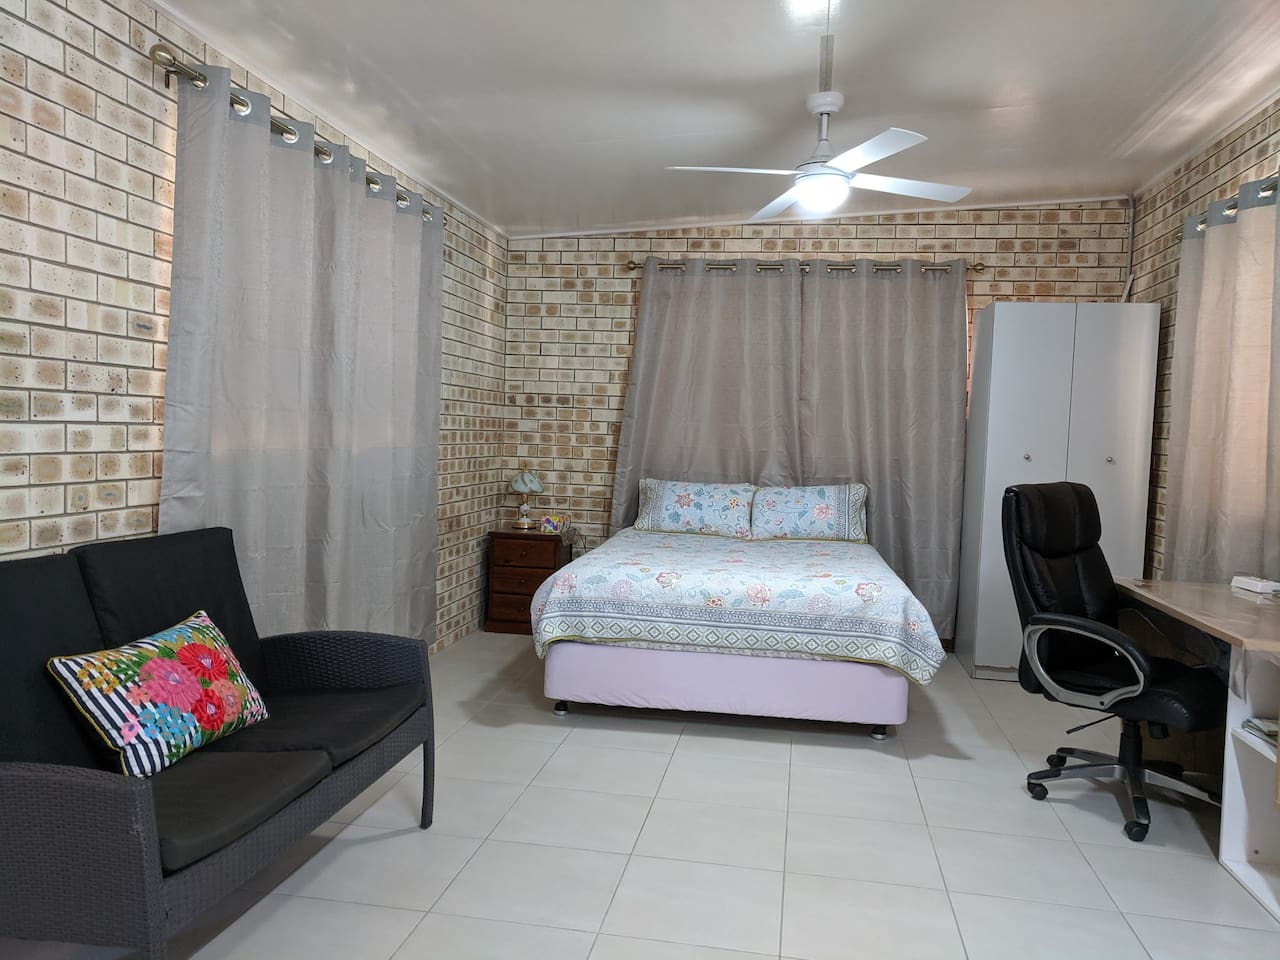 Spacious room for your comfortable stay